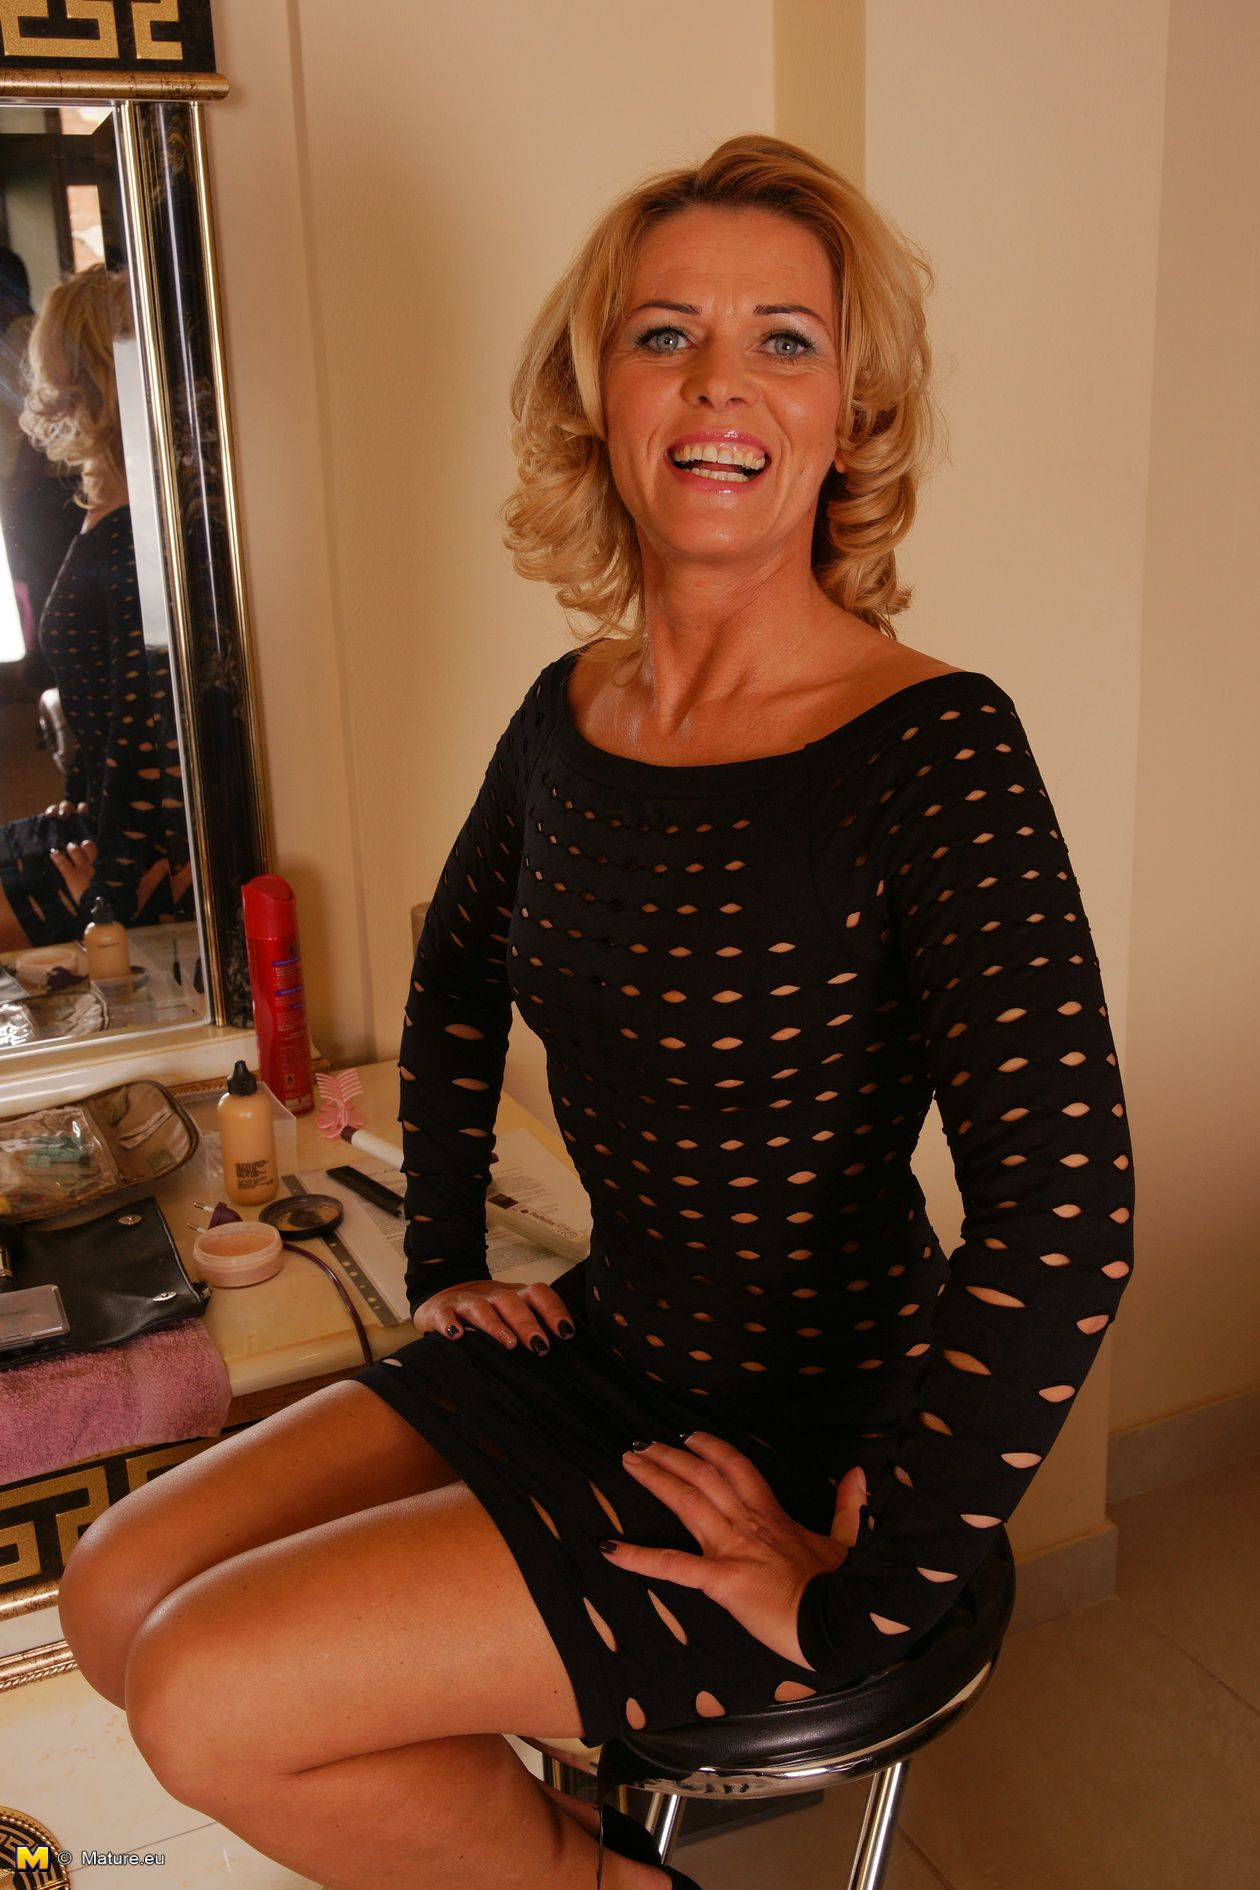 hot mature | mature ladies | pinterest | woman, party skirt and